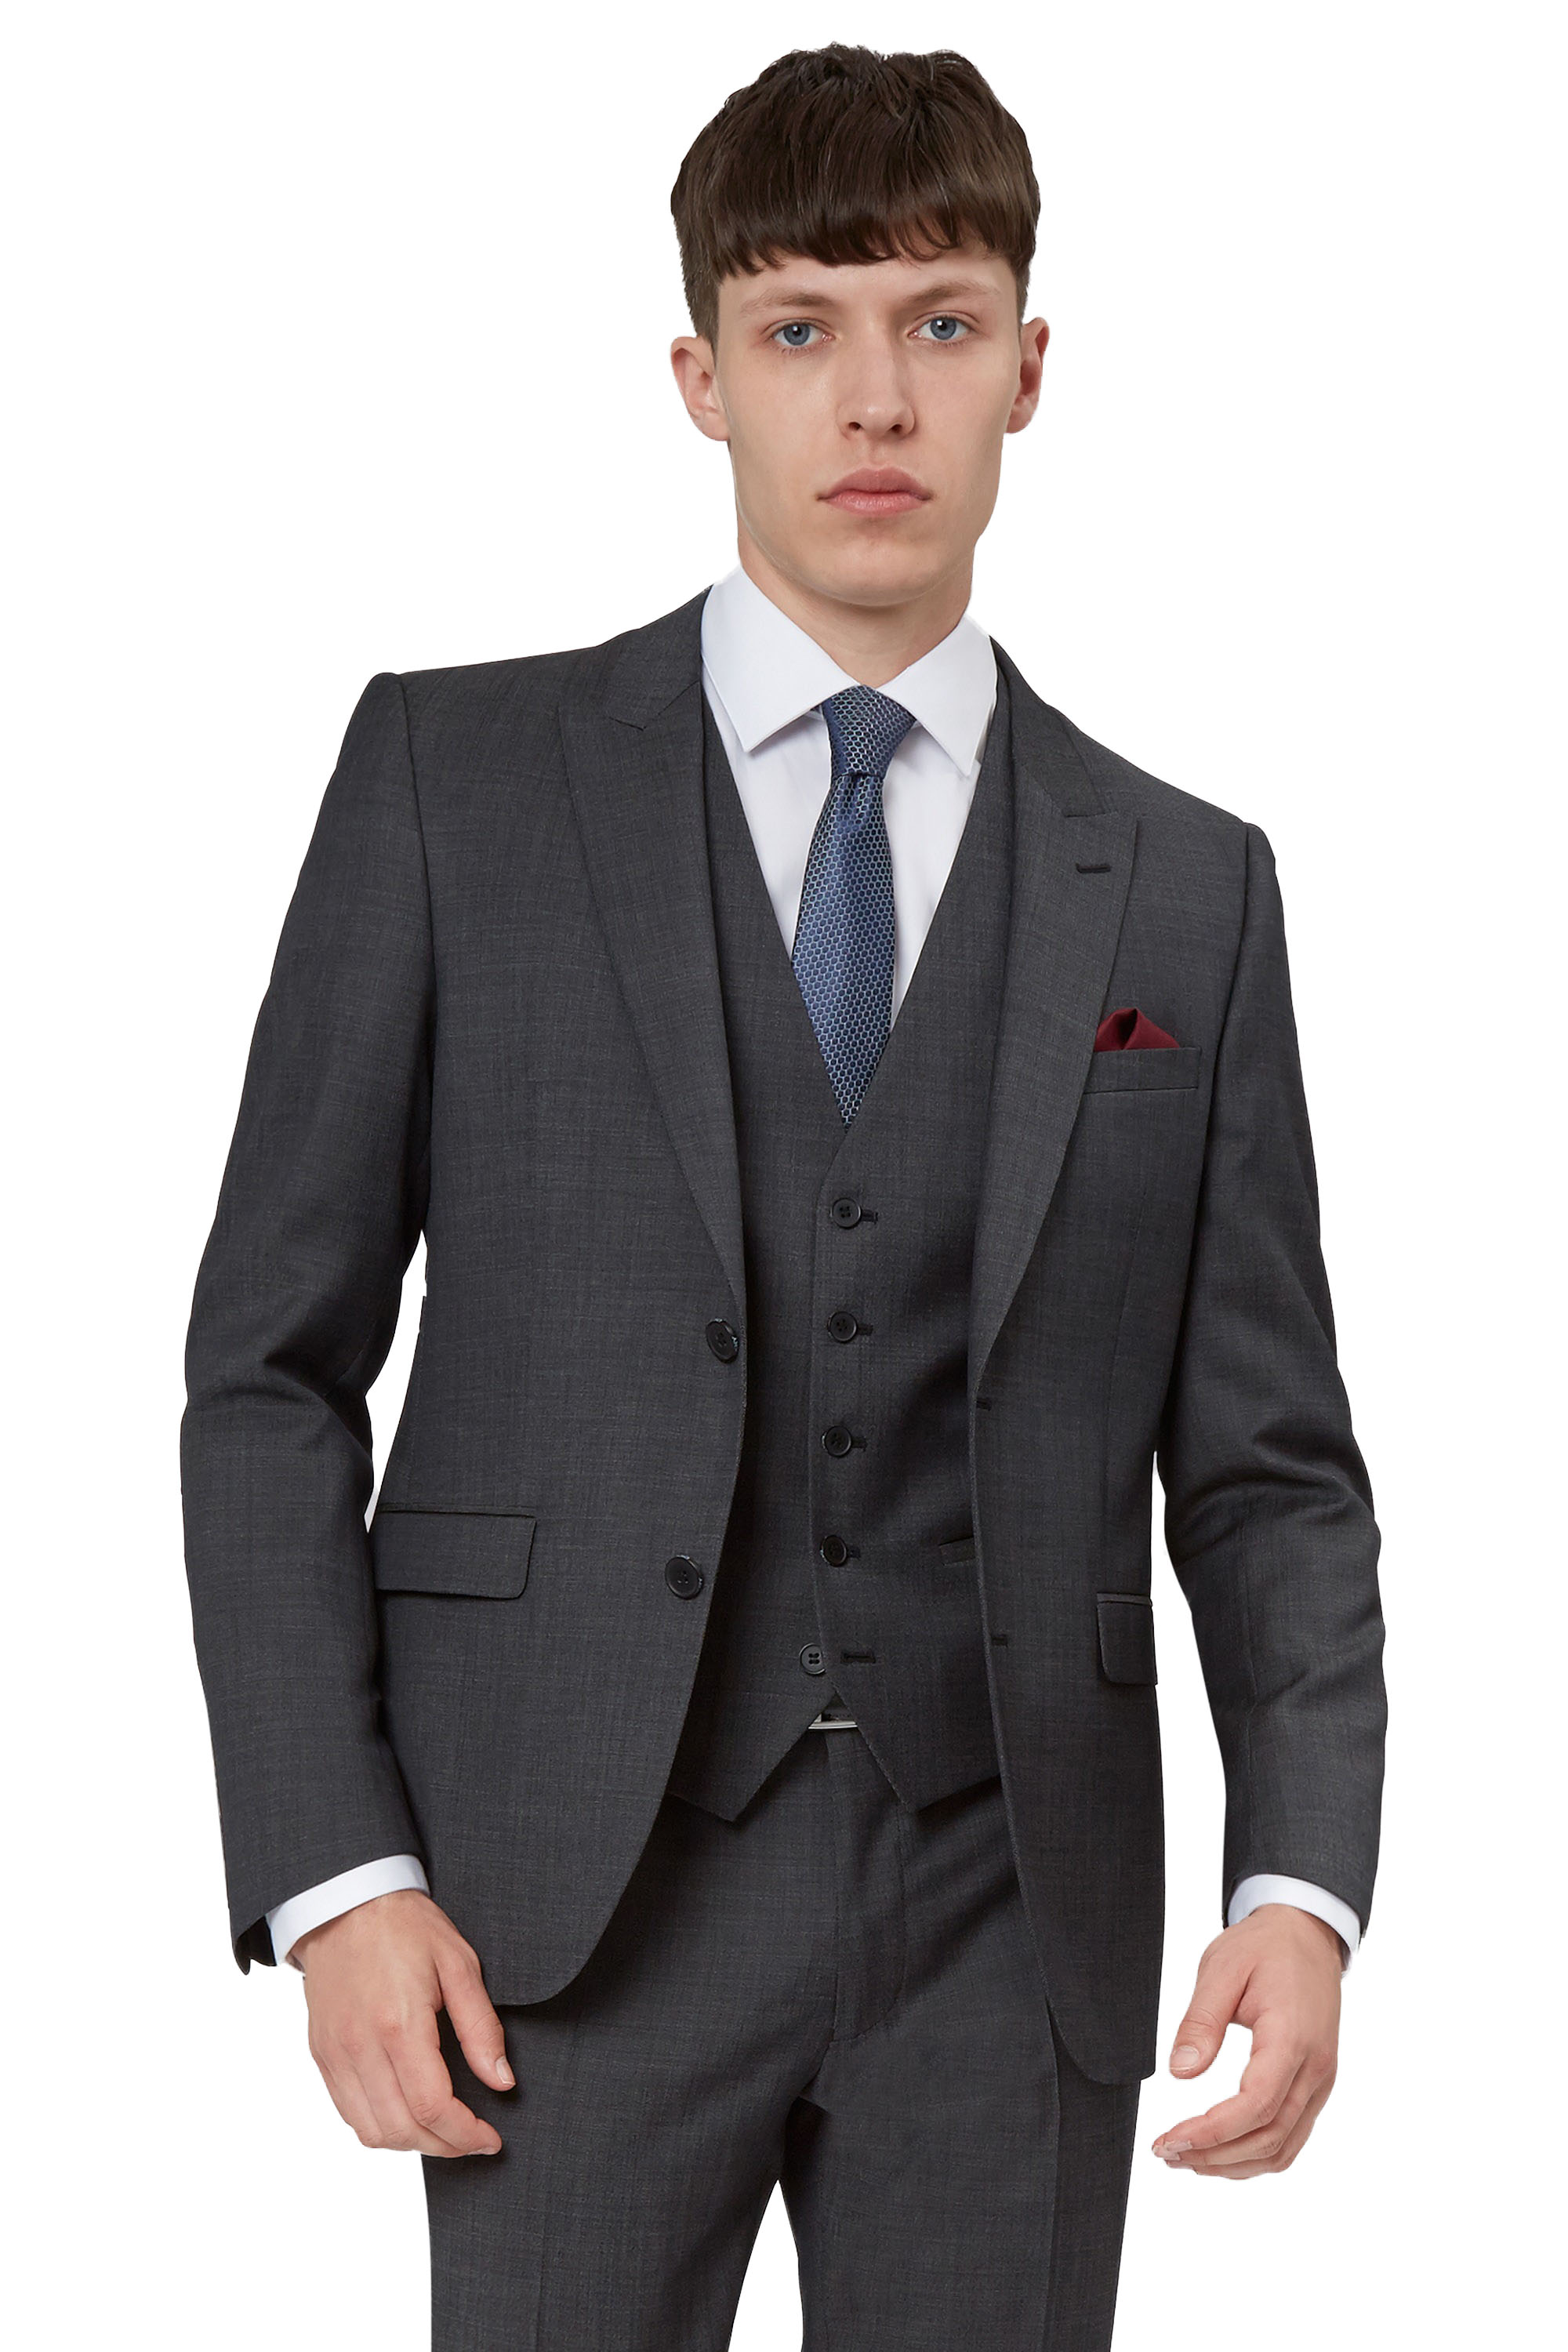 DKNY Mens Grey Suit Jacket Slim Fit Pindot Textured Two Button ...